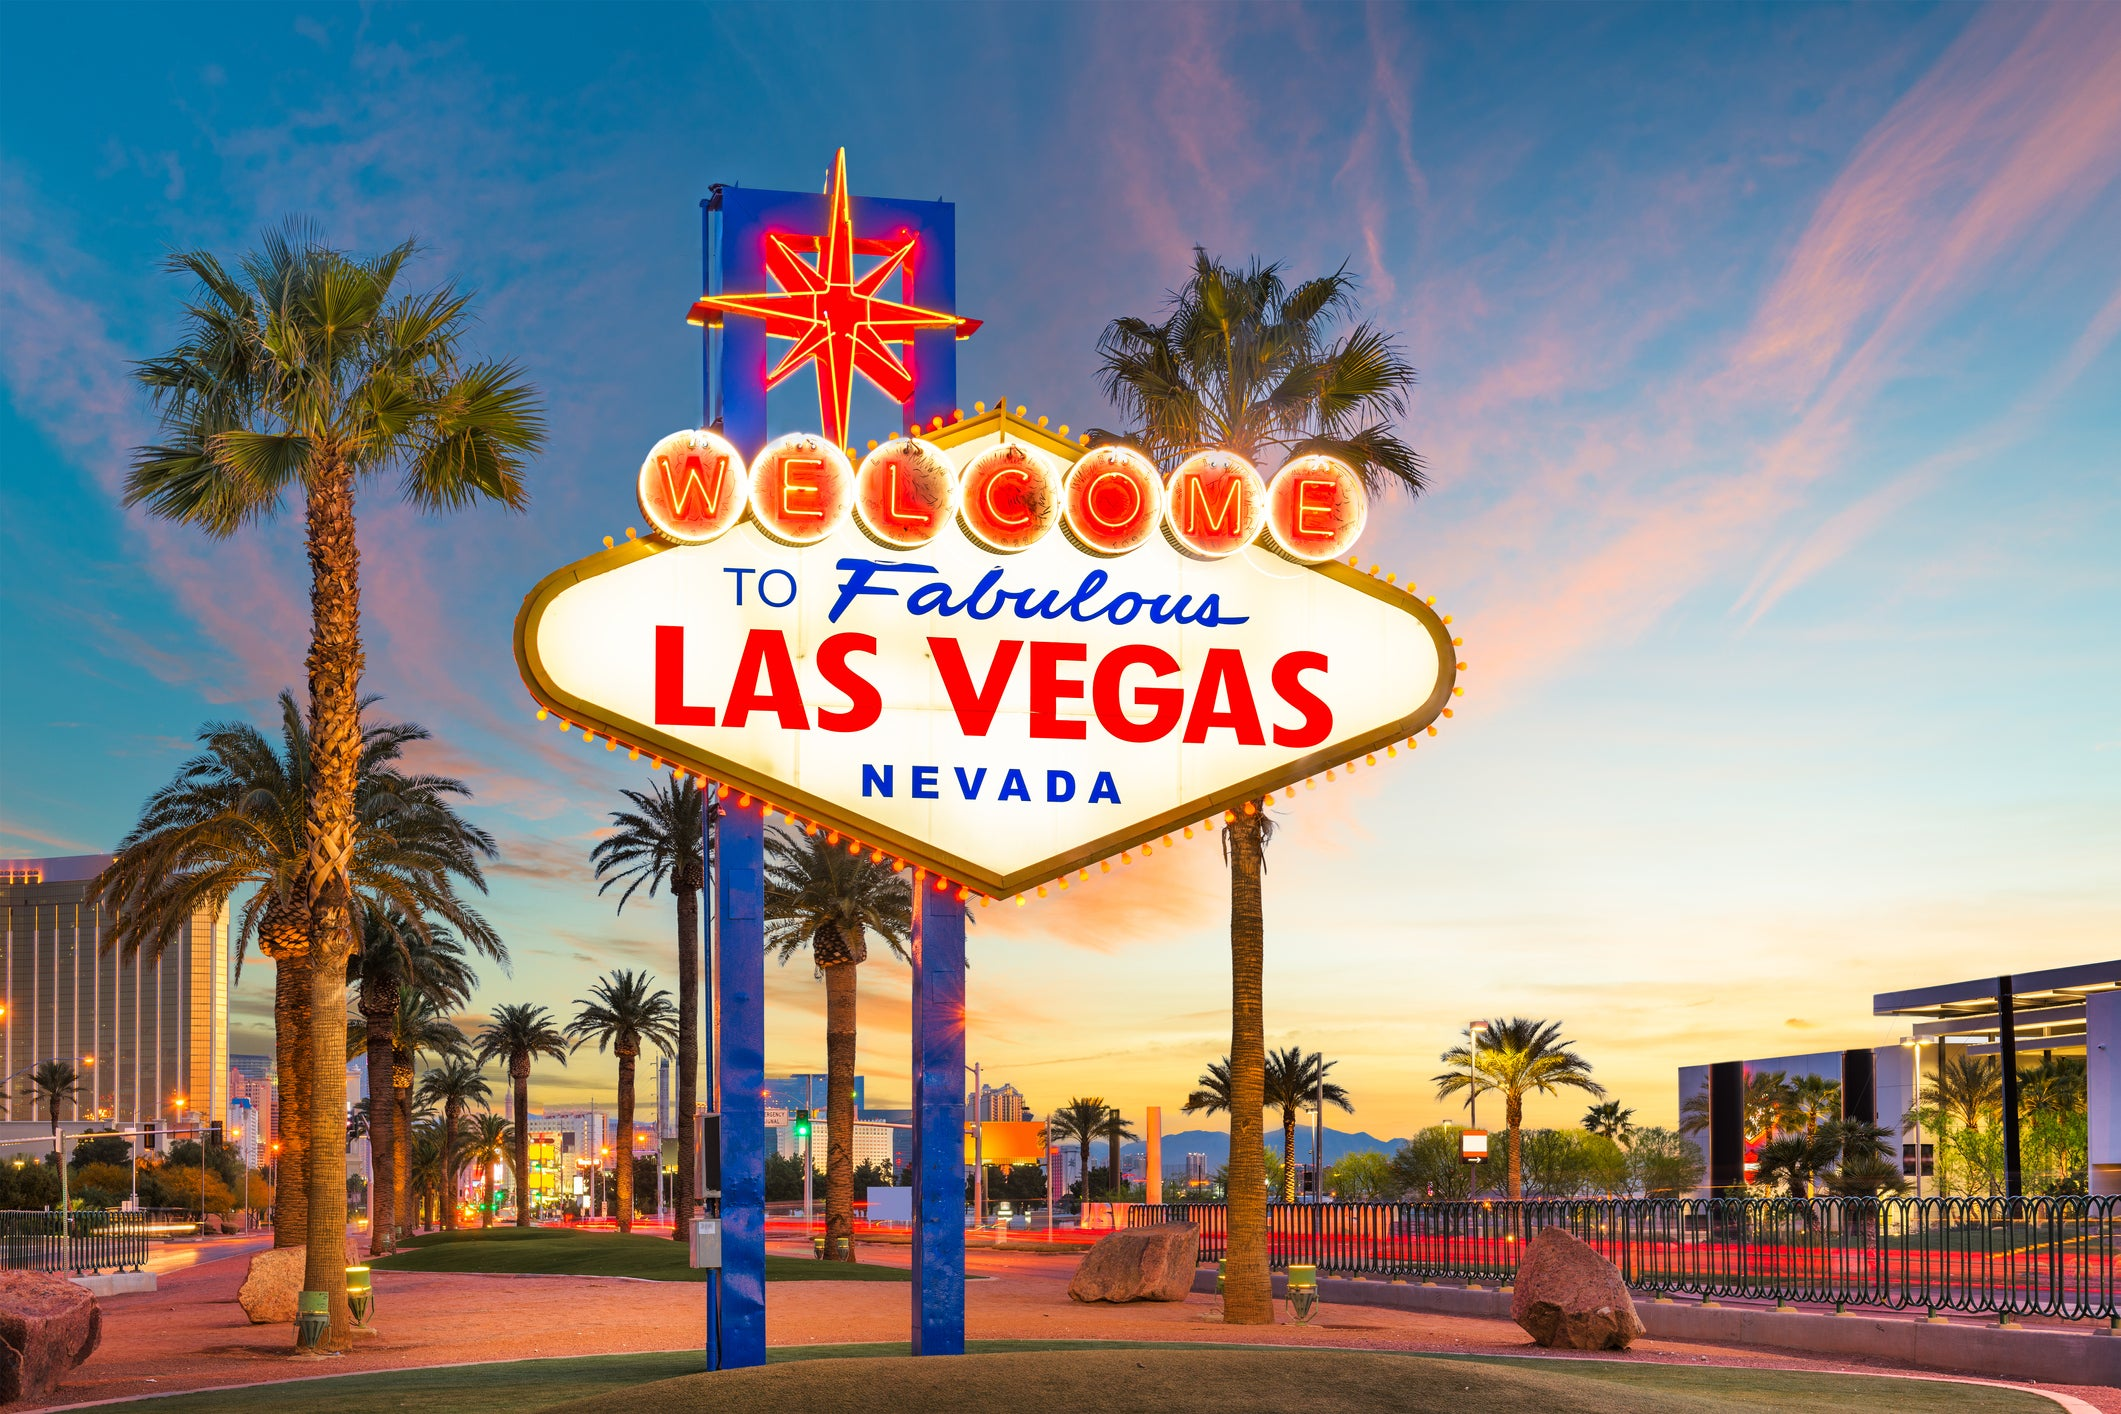 How to See Las Vegas on a Budget